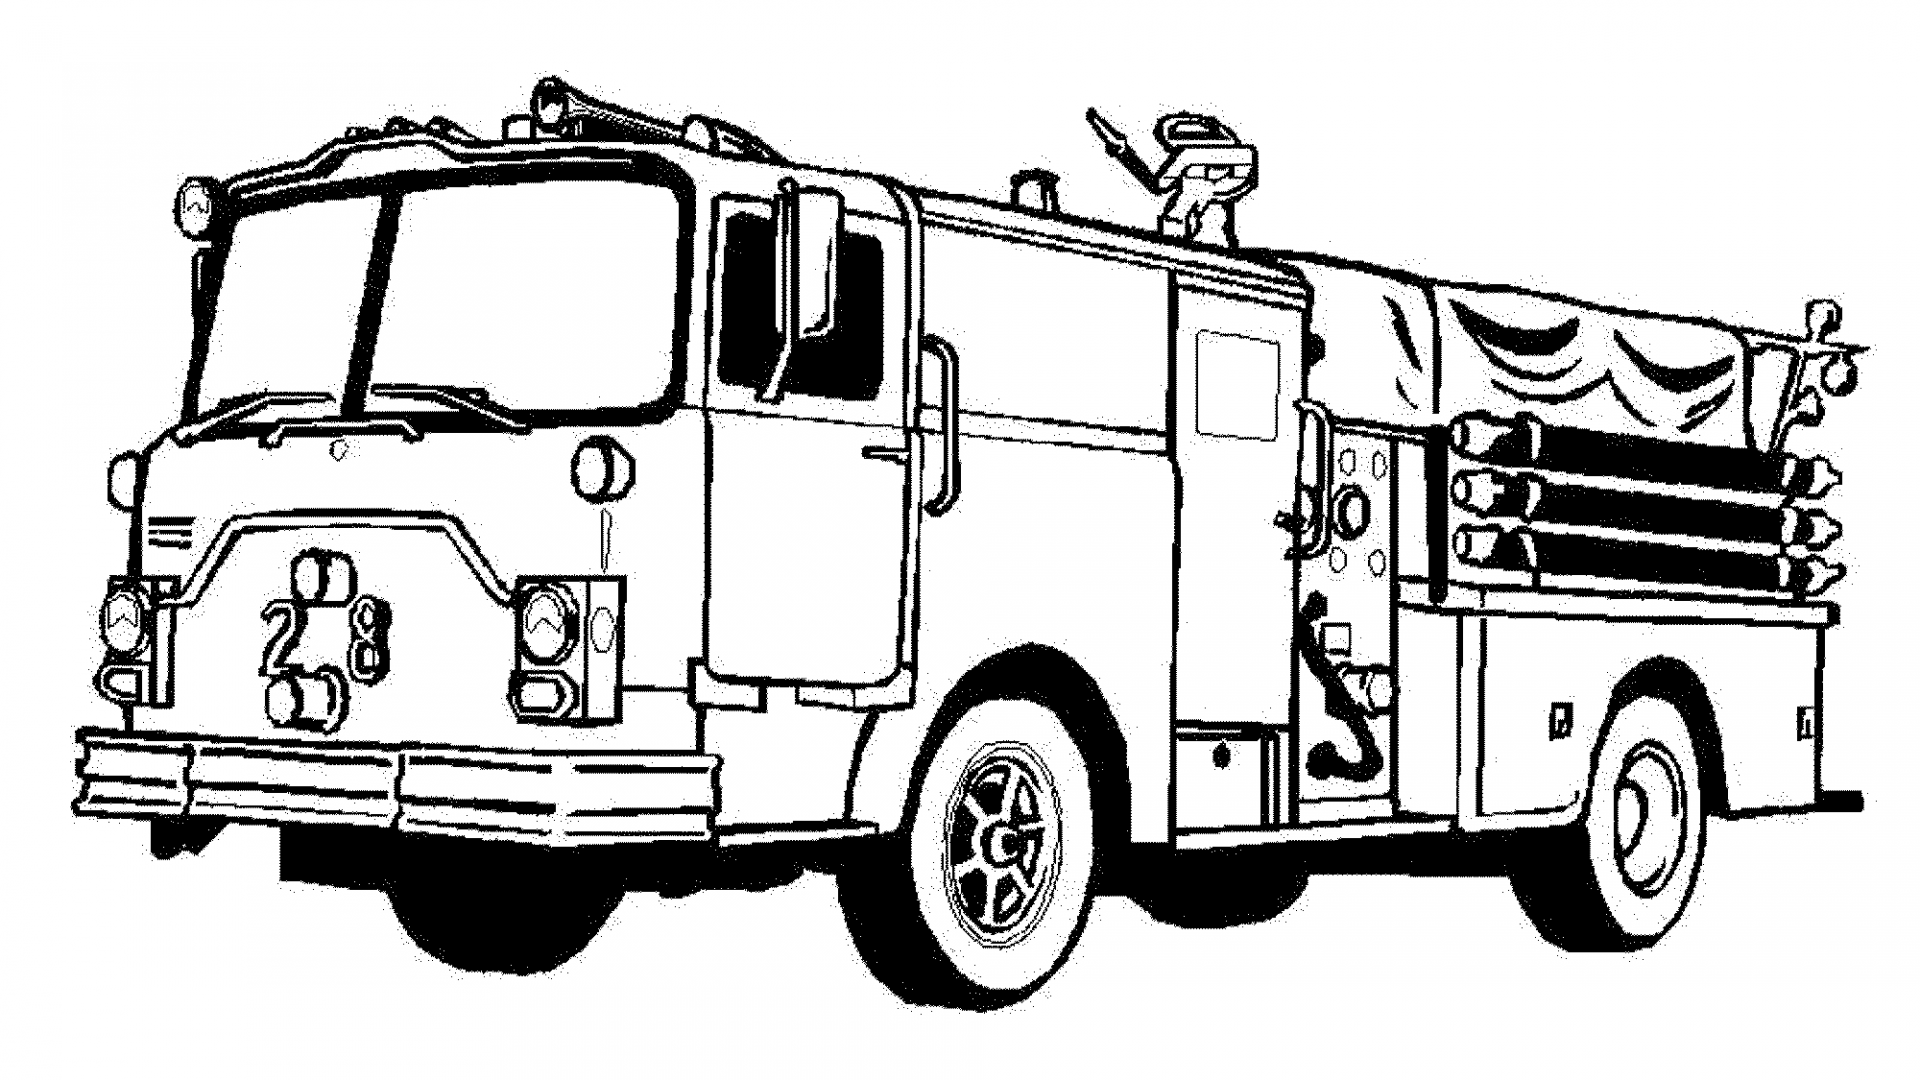 fire truck coloring page | Coloring Board | Pinterest | Fire trucks ...